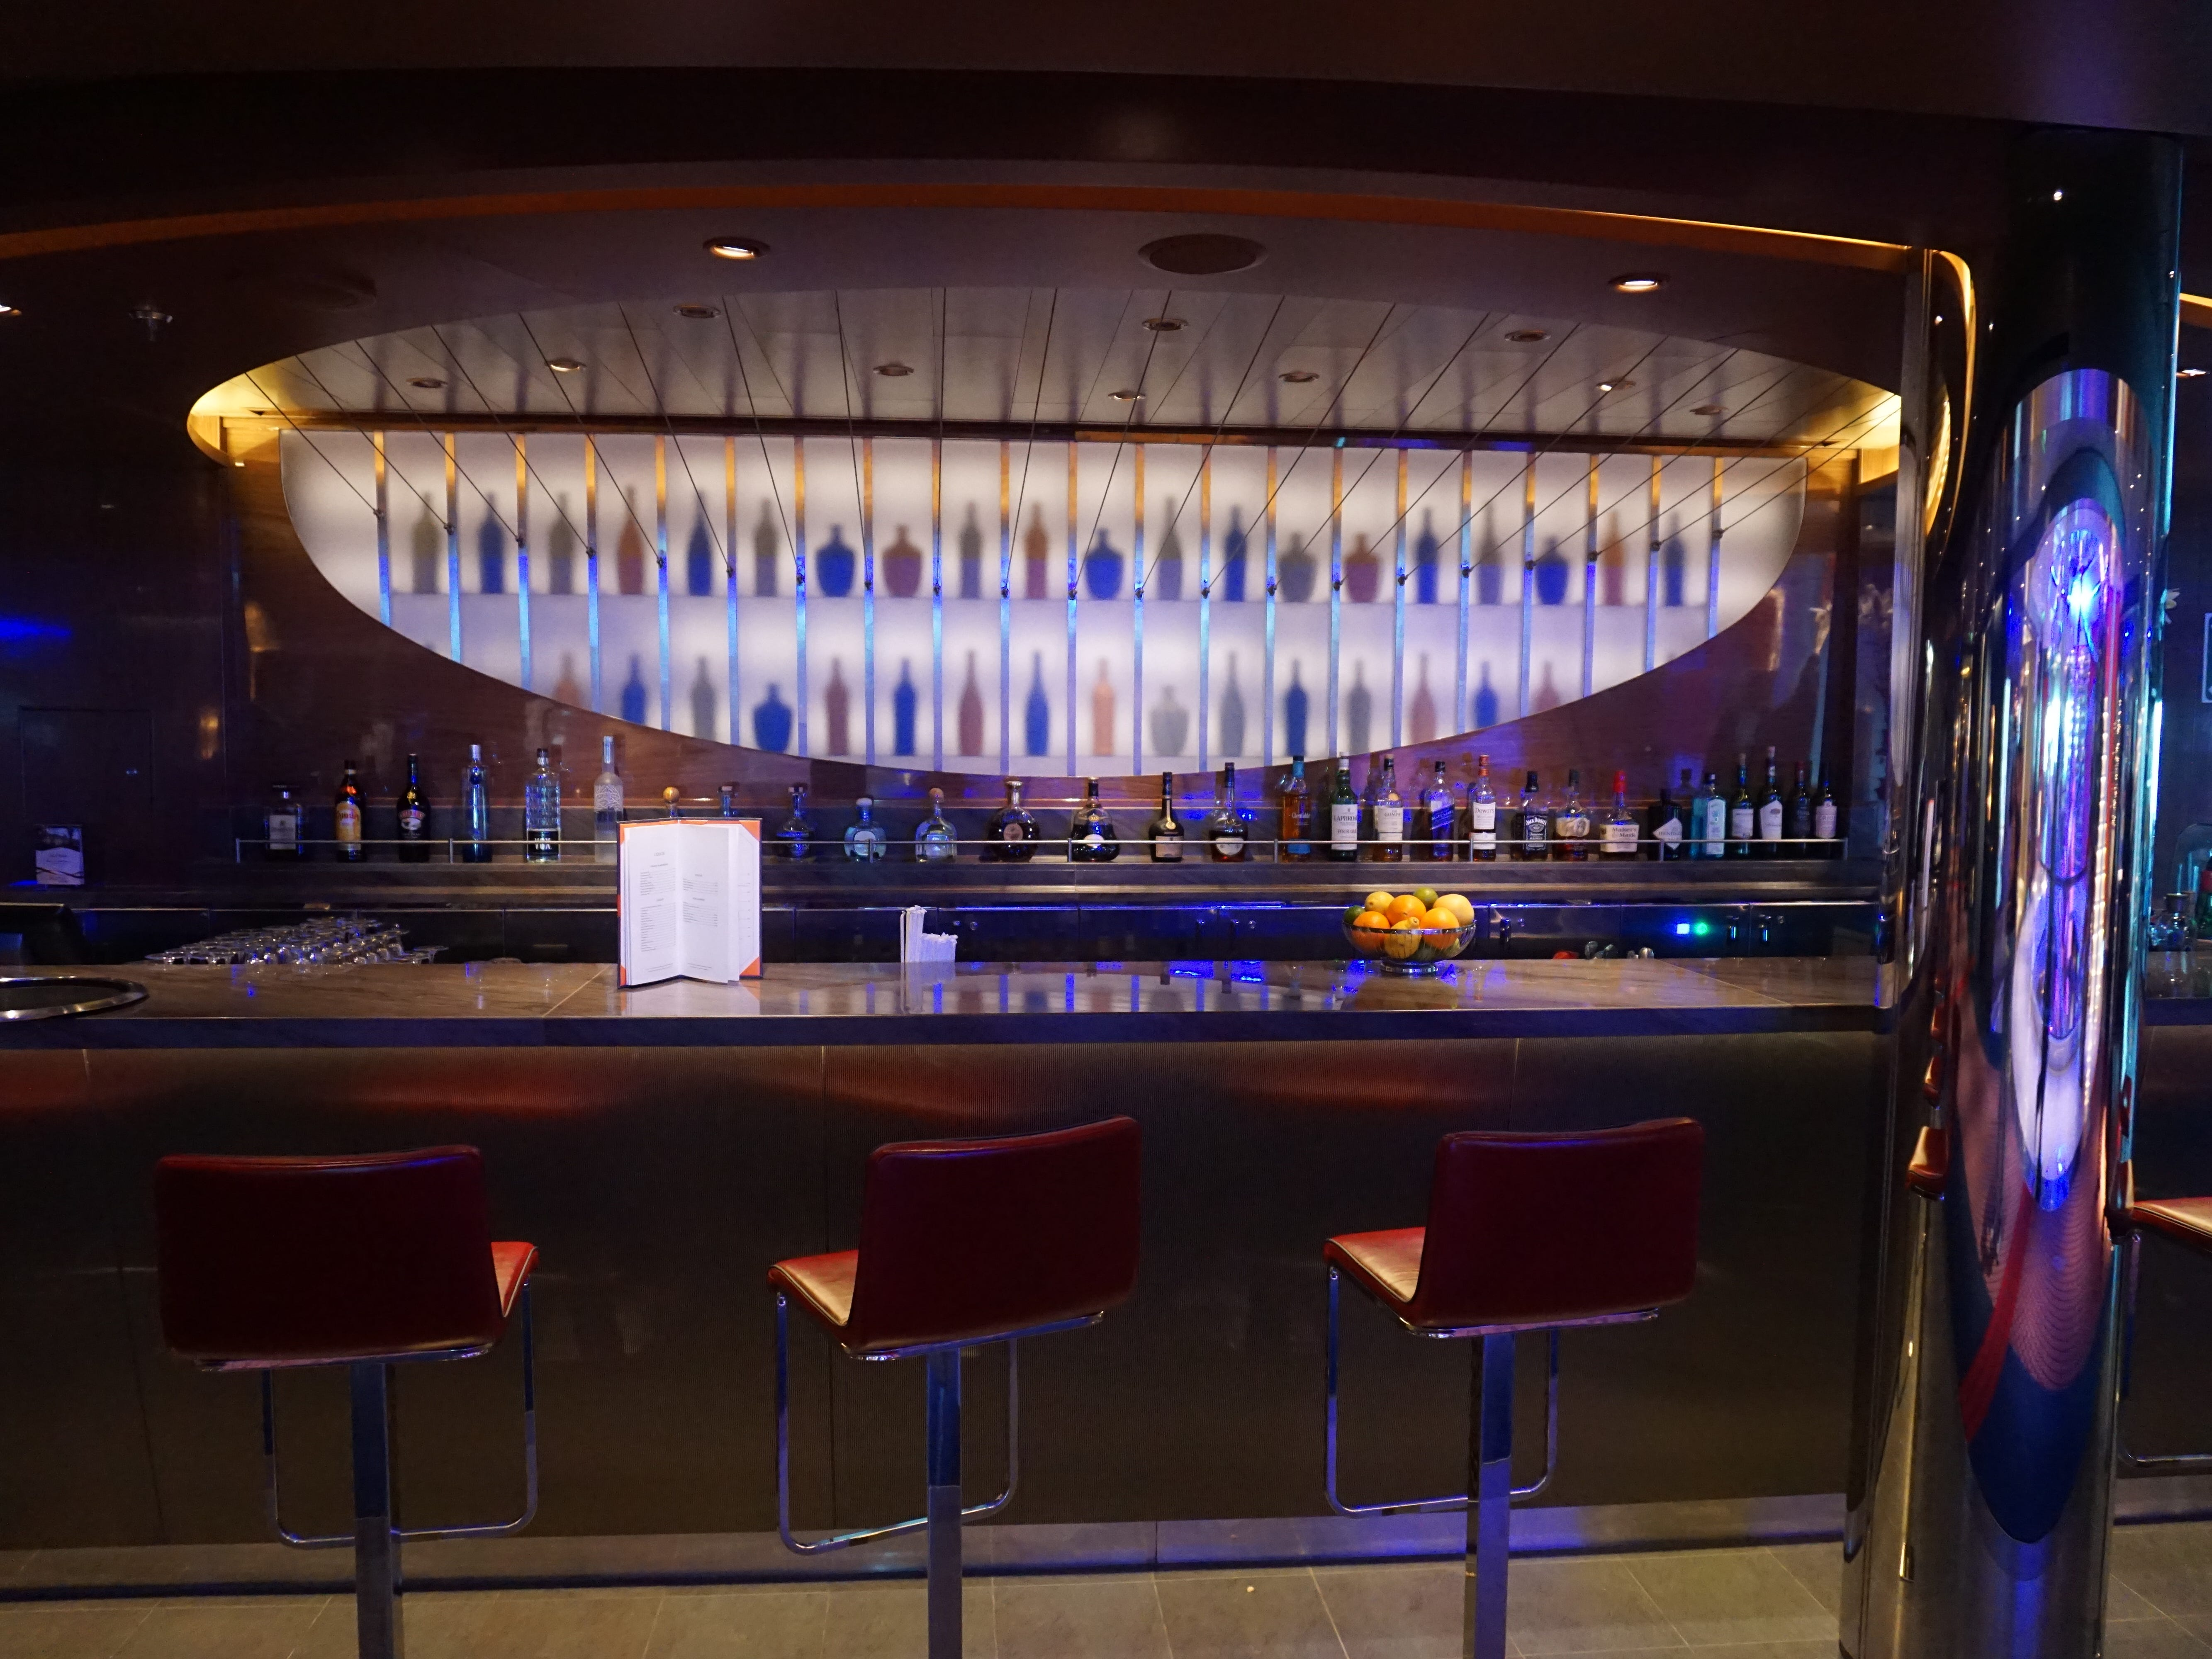 Facing the Atrium from the starboard side of Deck 2, the 63-seat Ocean Bar has a backdrop that has been inspired by a string instrument.